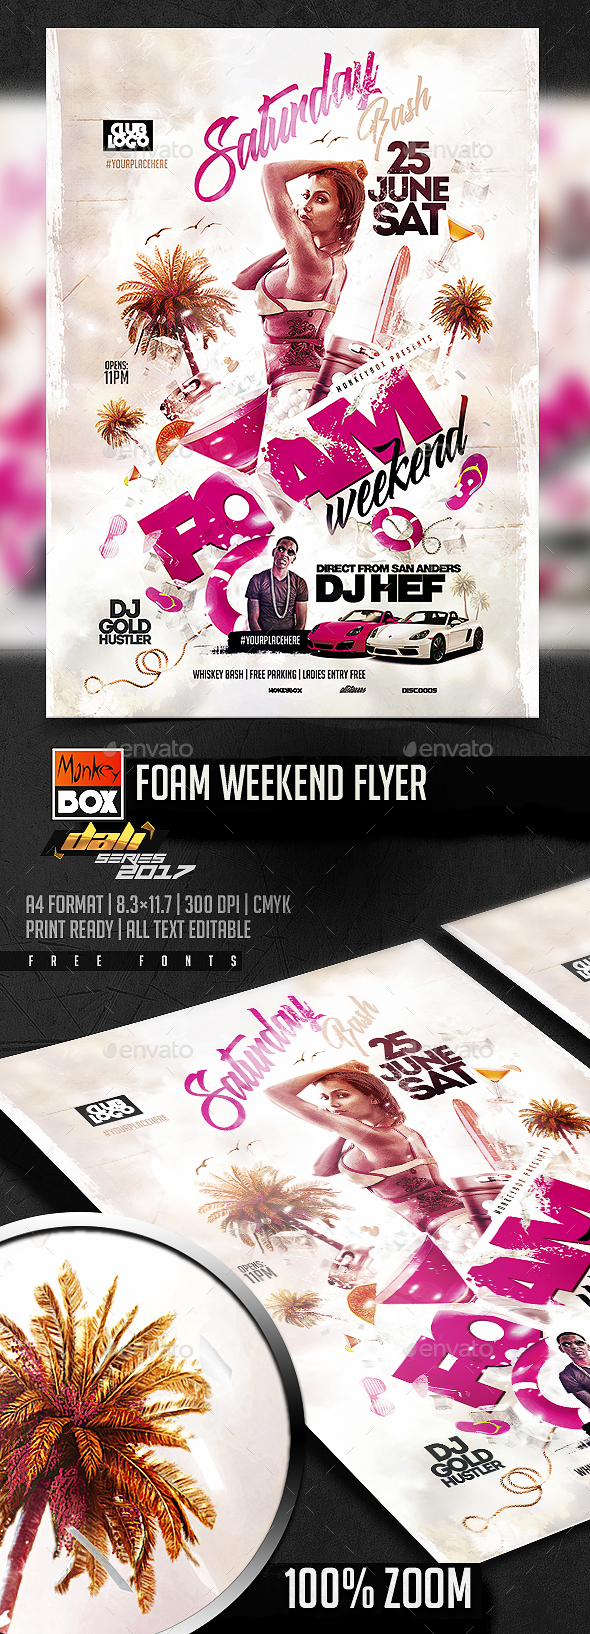 Foam Weekend Flyer - Events Flyers